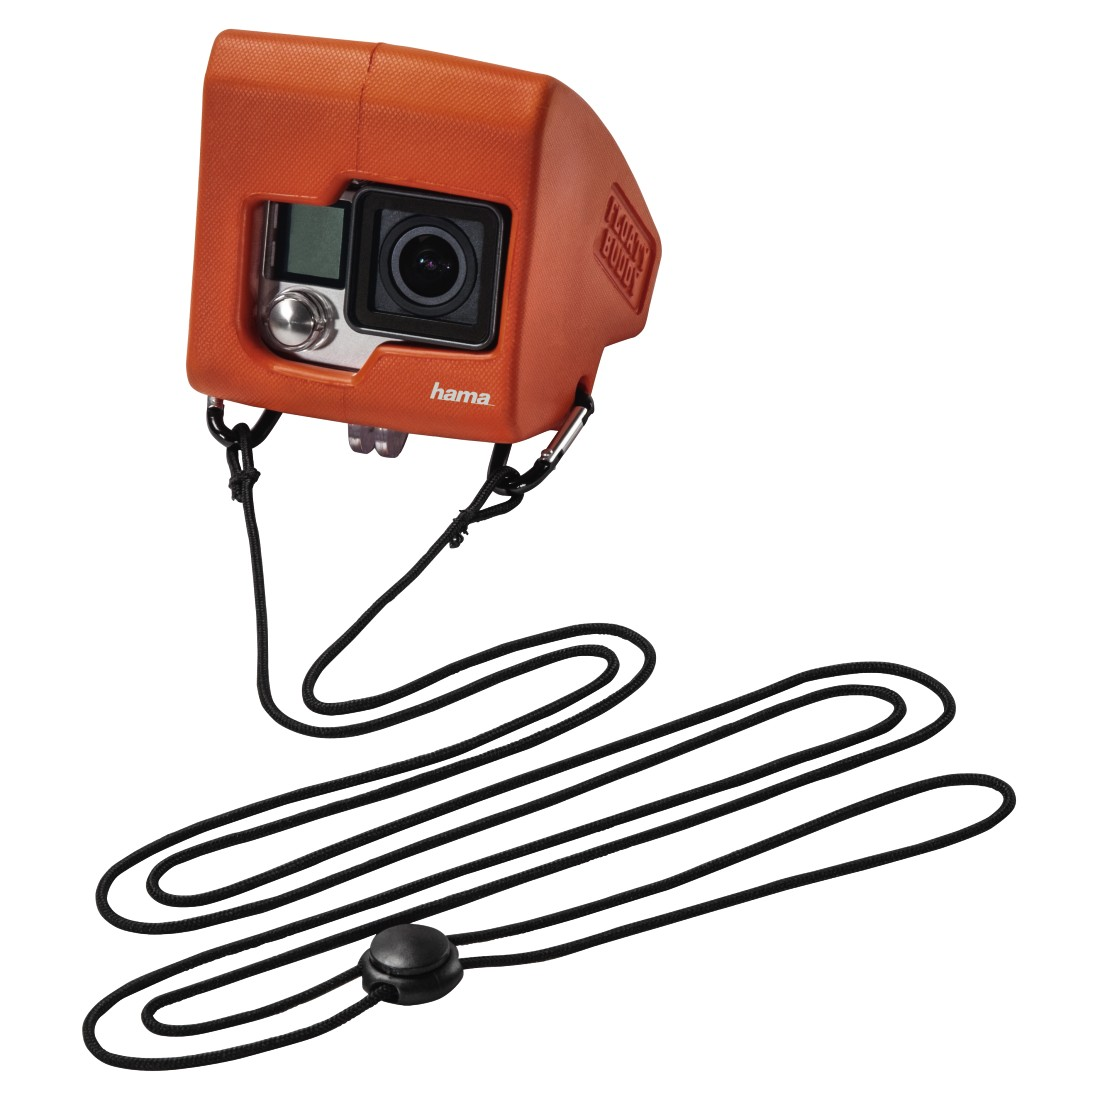 awx High-Res Appliance - Hama, Floaty Buddy for GoPro HD Hero 4